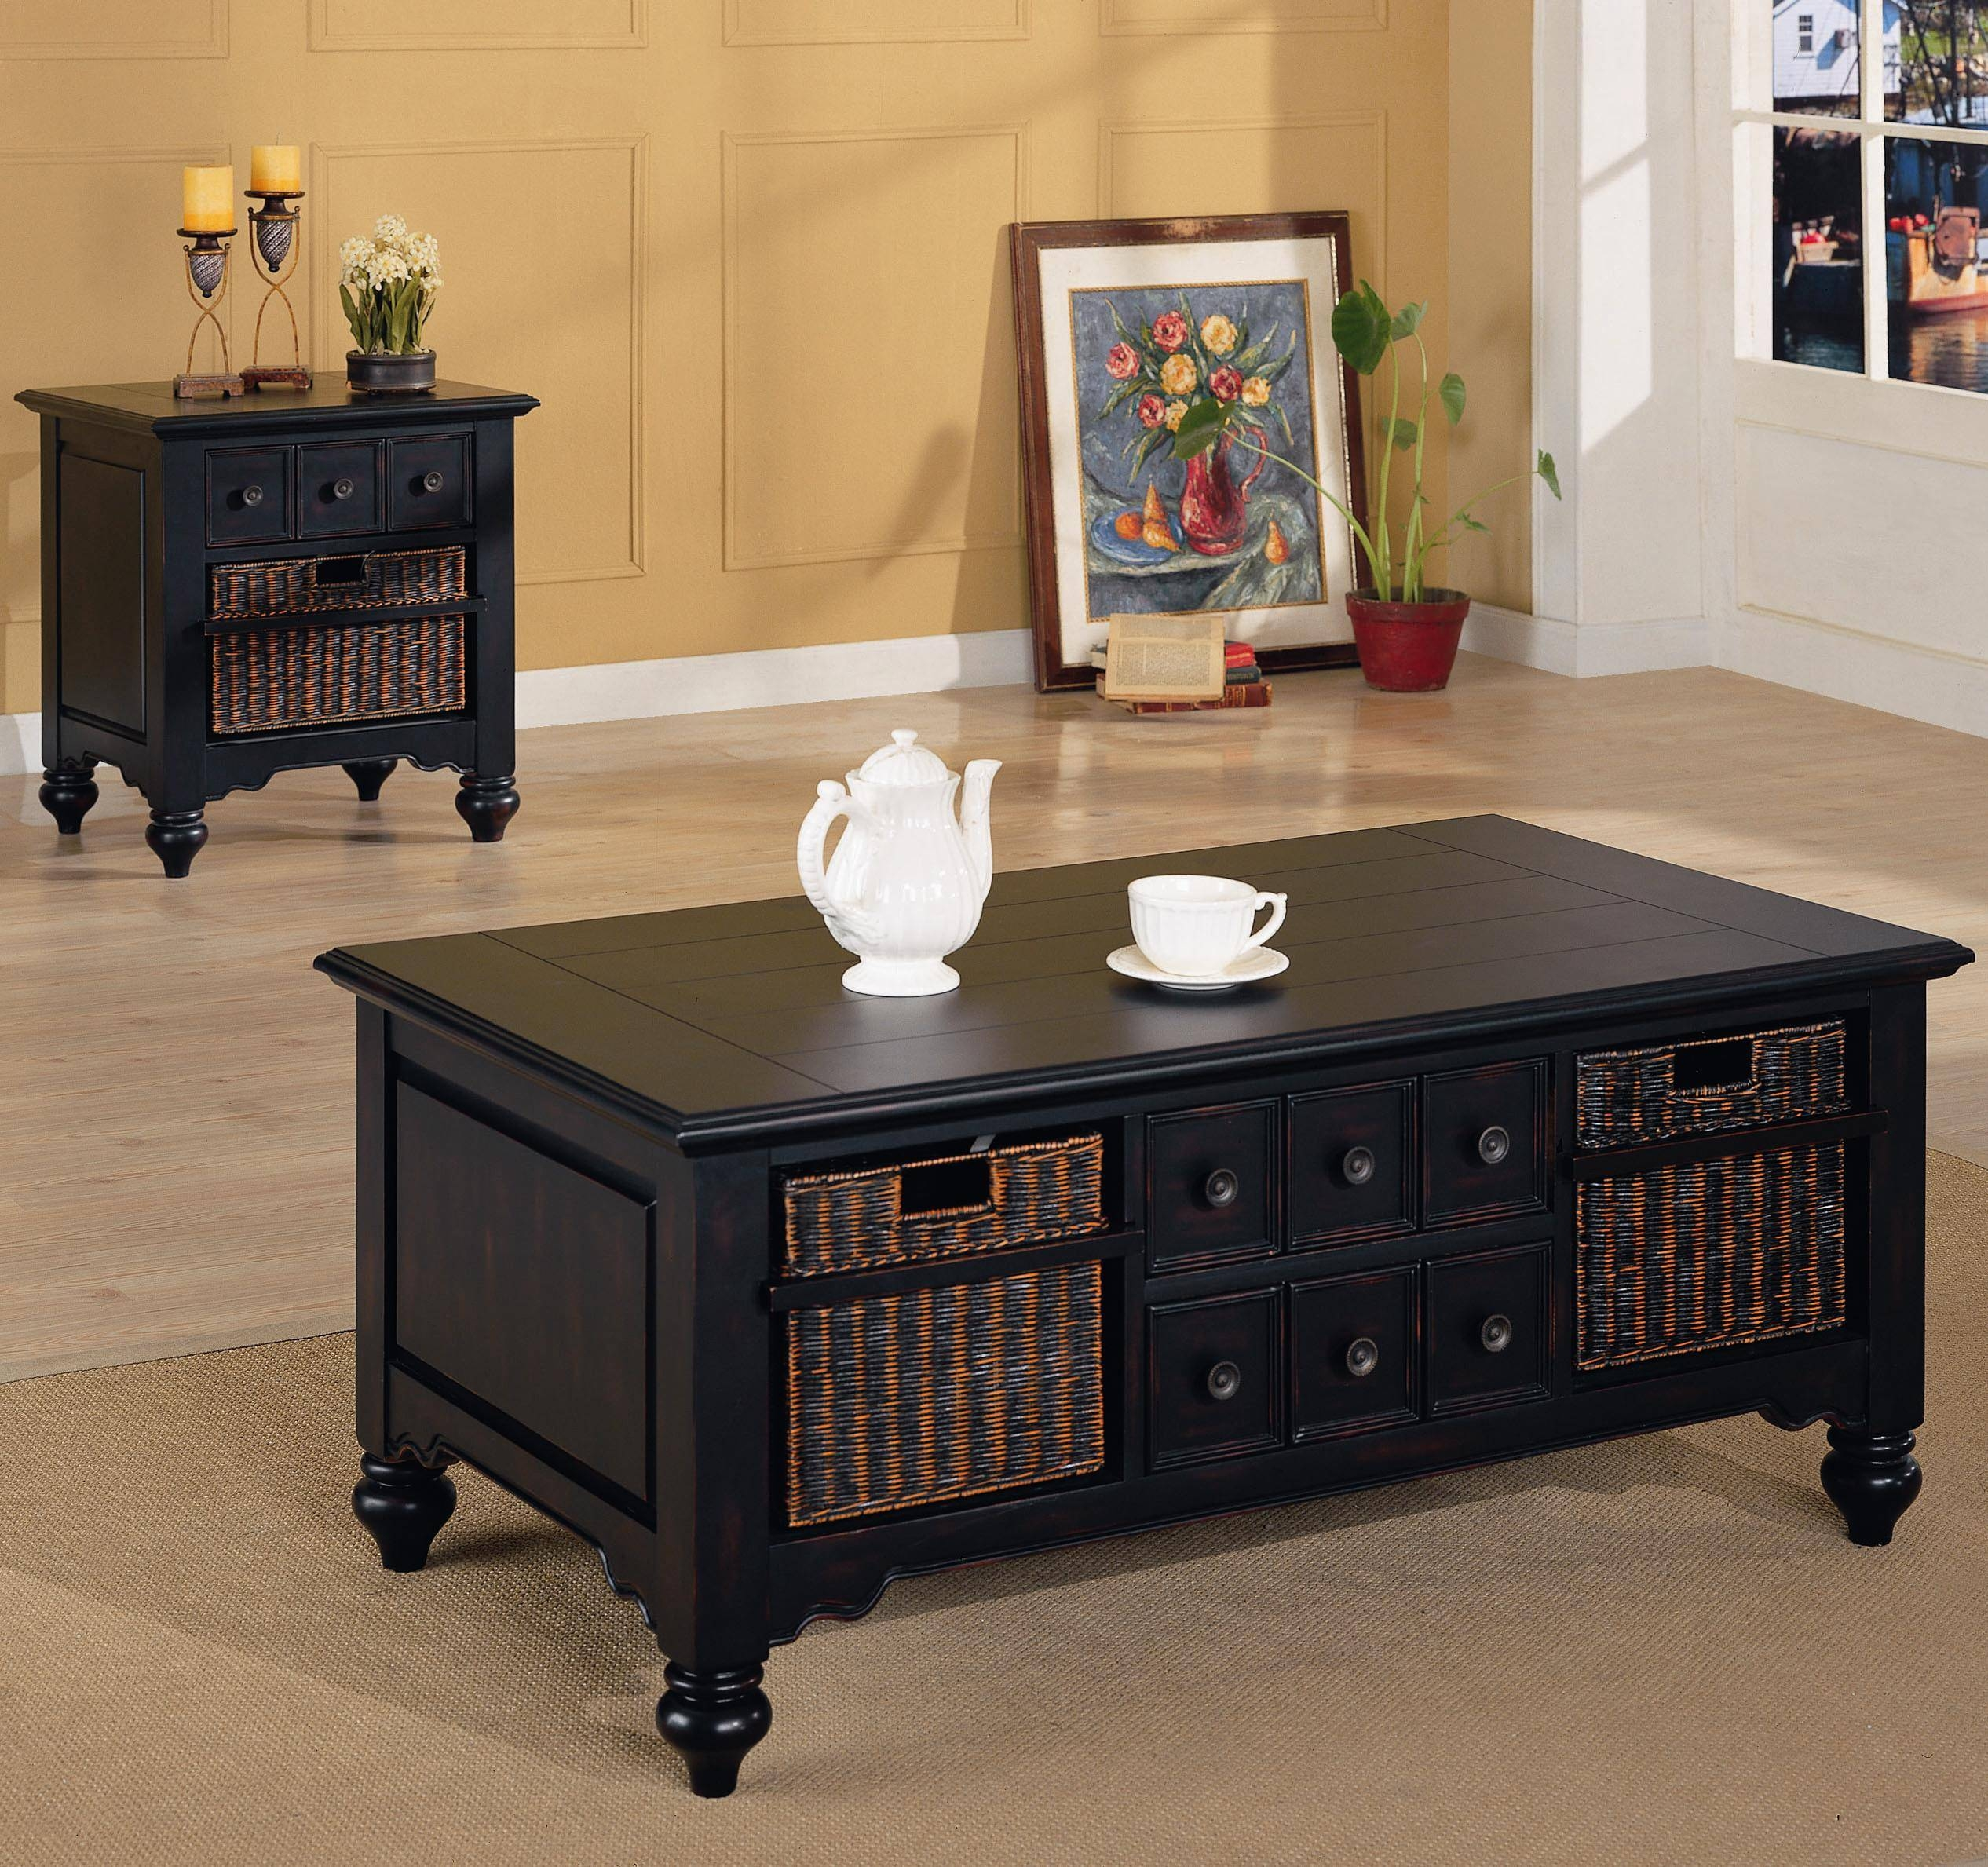 Mesmerizing Small Coffee Tables With Drawers Bring Astounding pertaining to Round Coffee Tables With Drawer (Image 21 of 30)